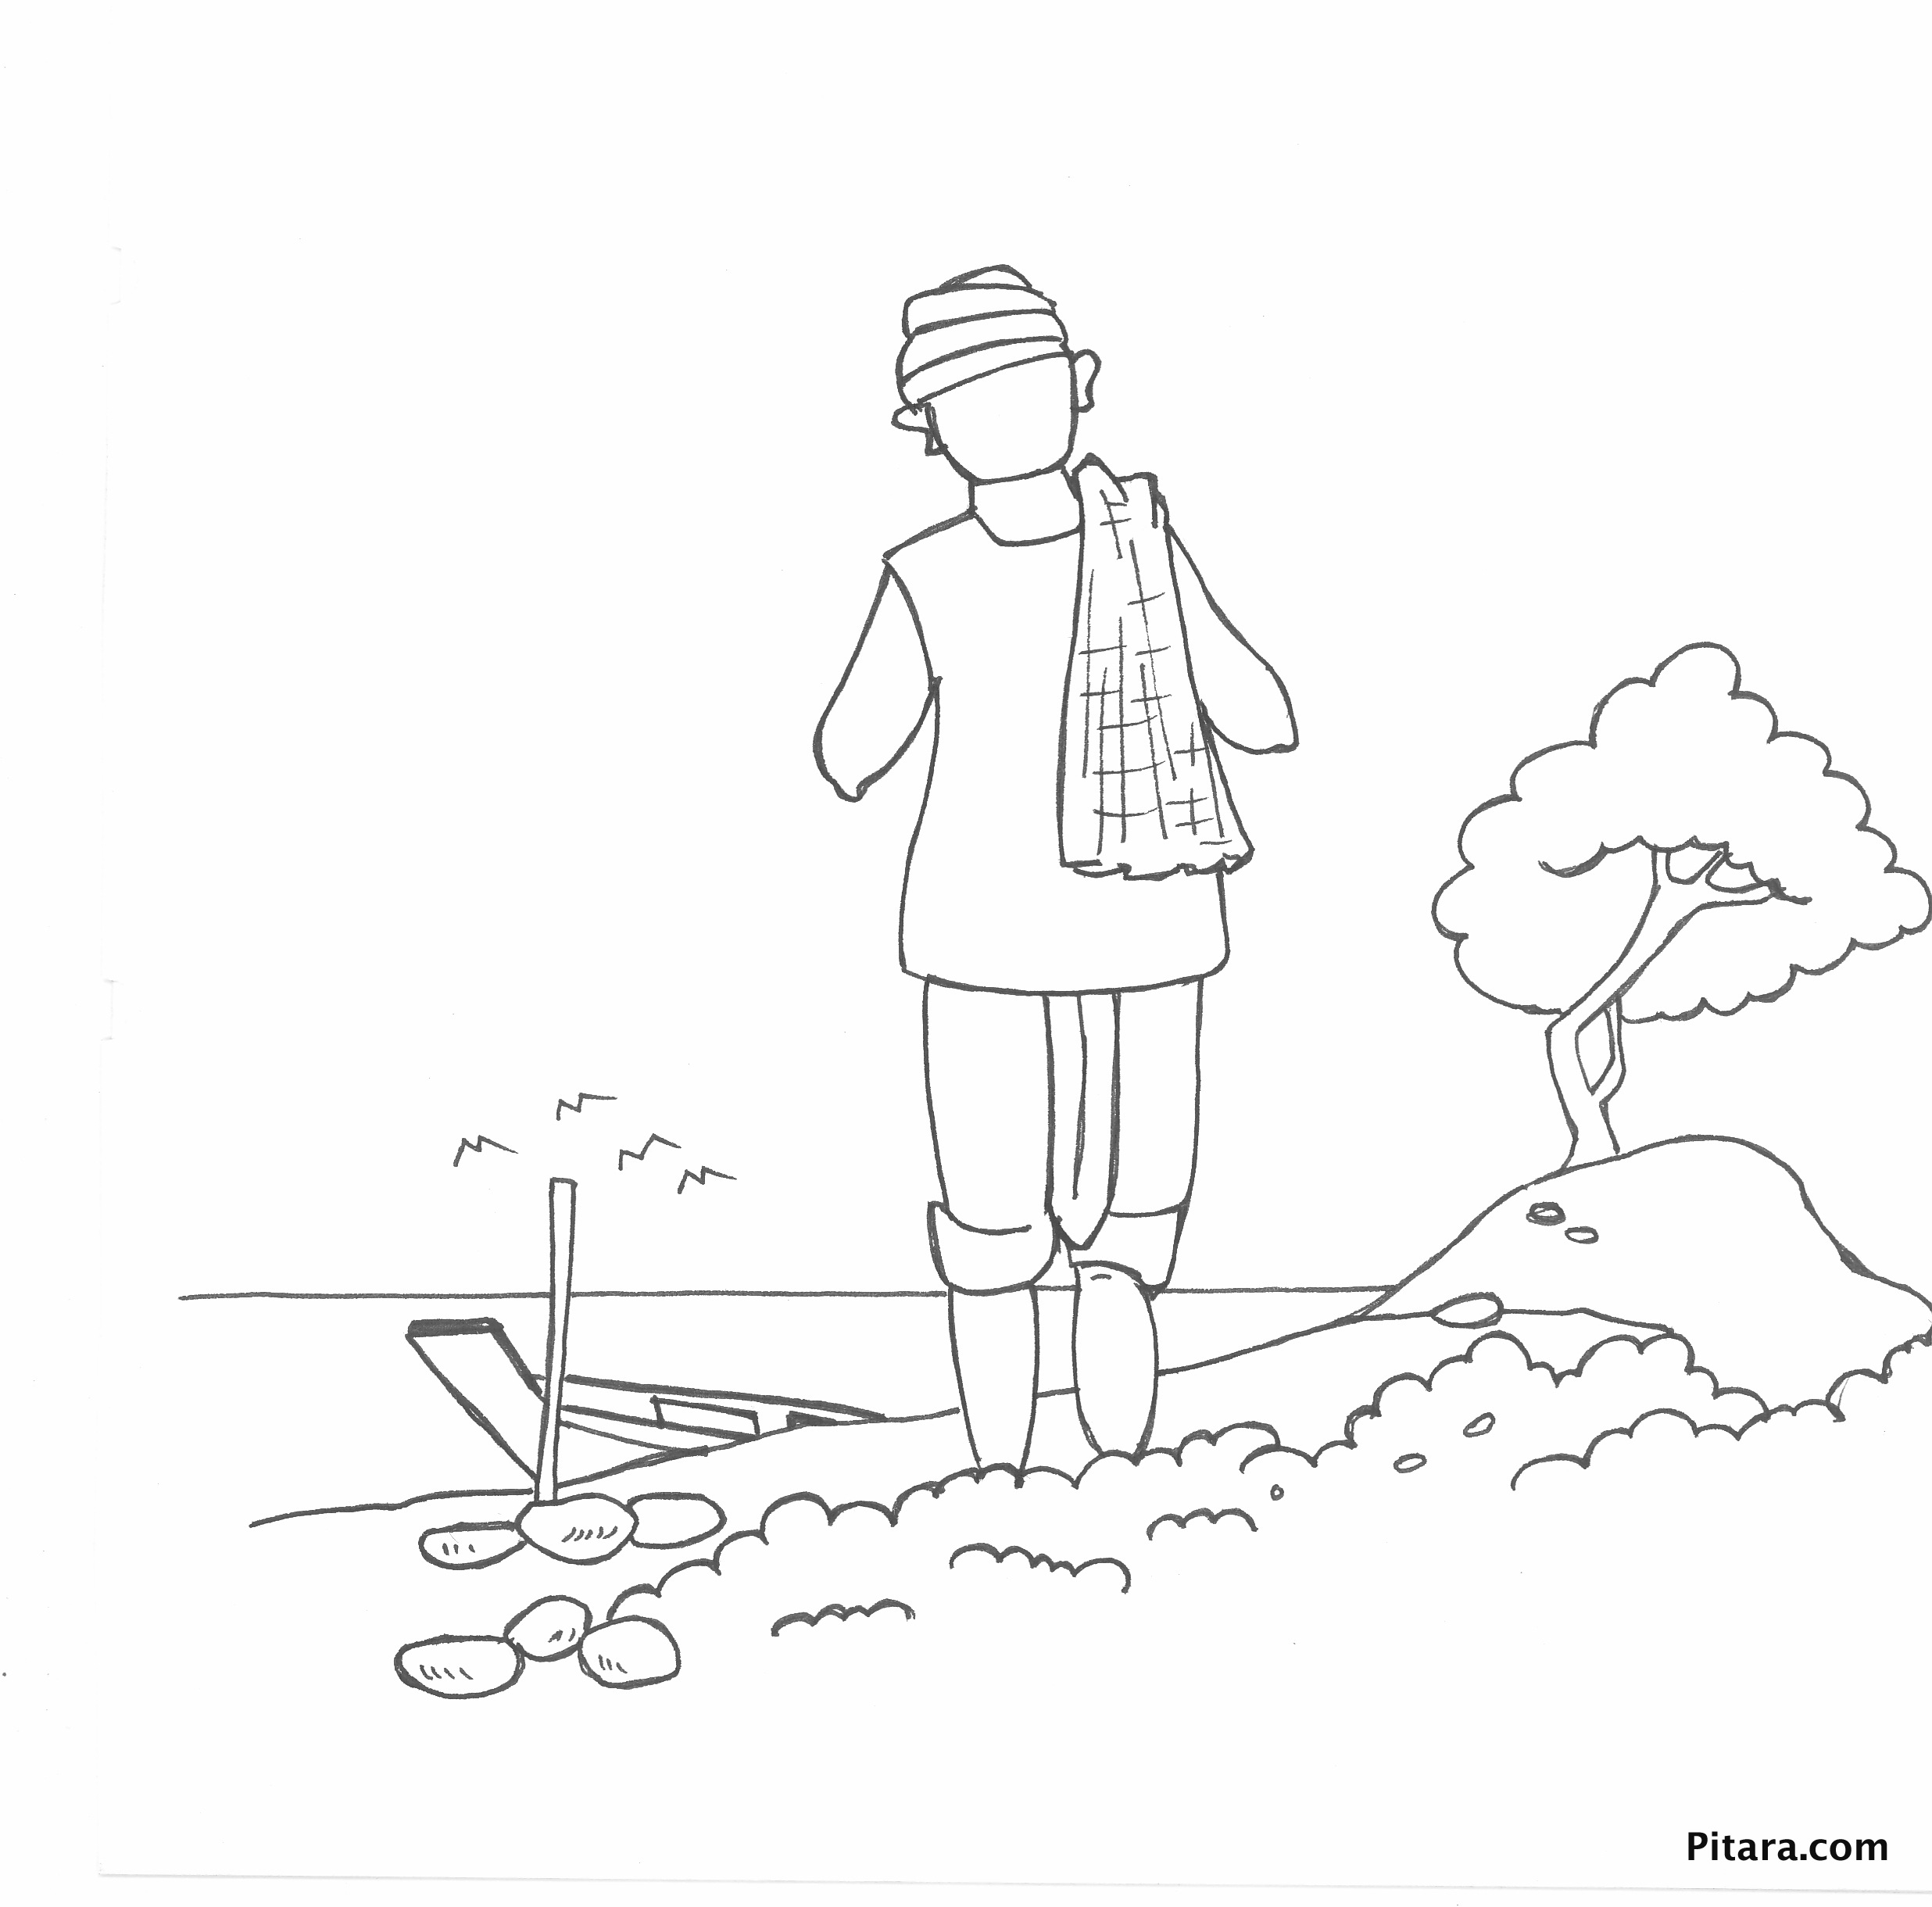 farmer coloring image indian farmer by the river coloring page pitara kids farmer image coloring